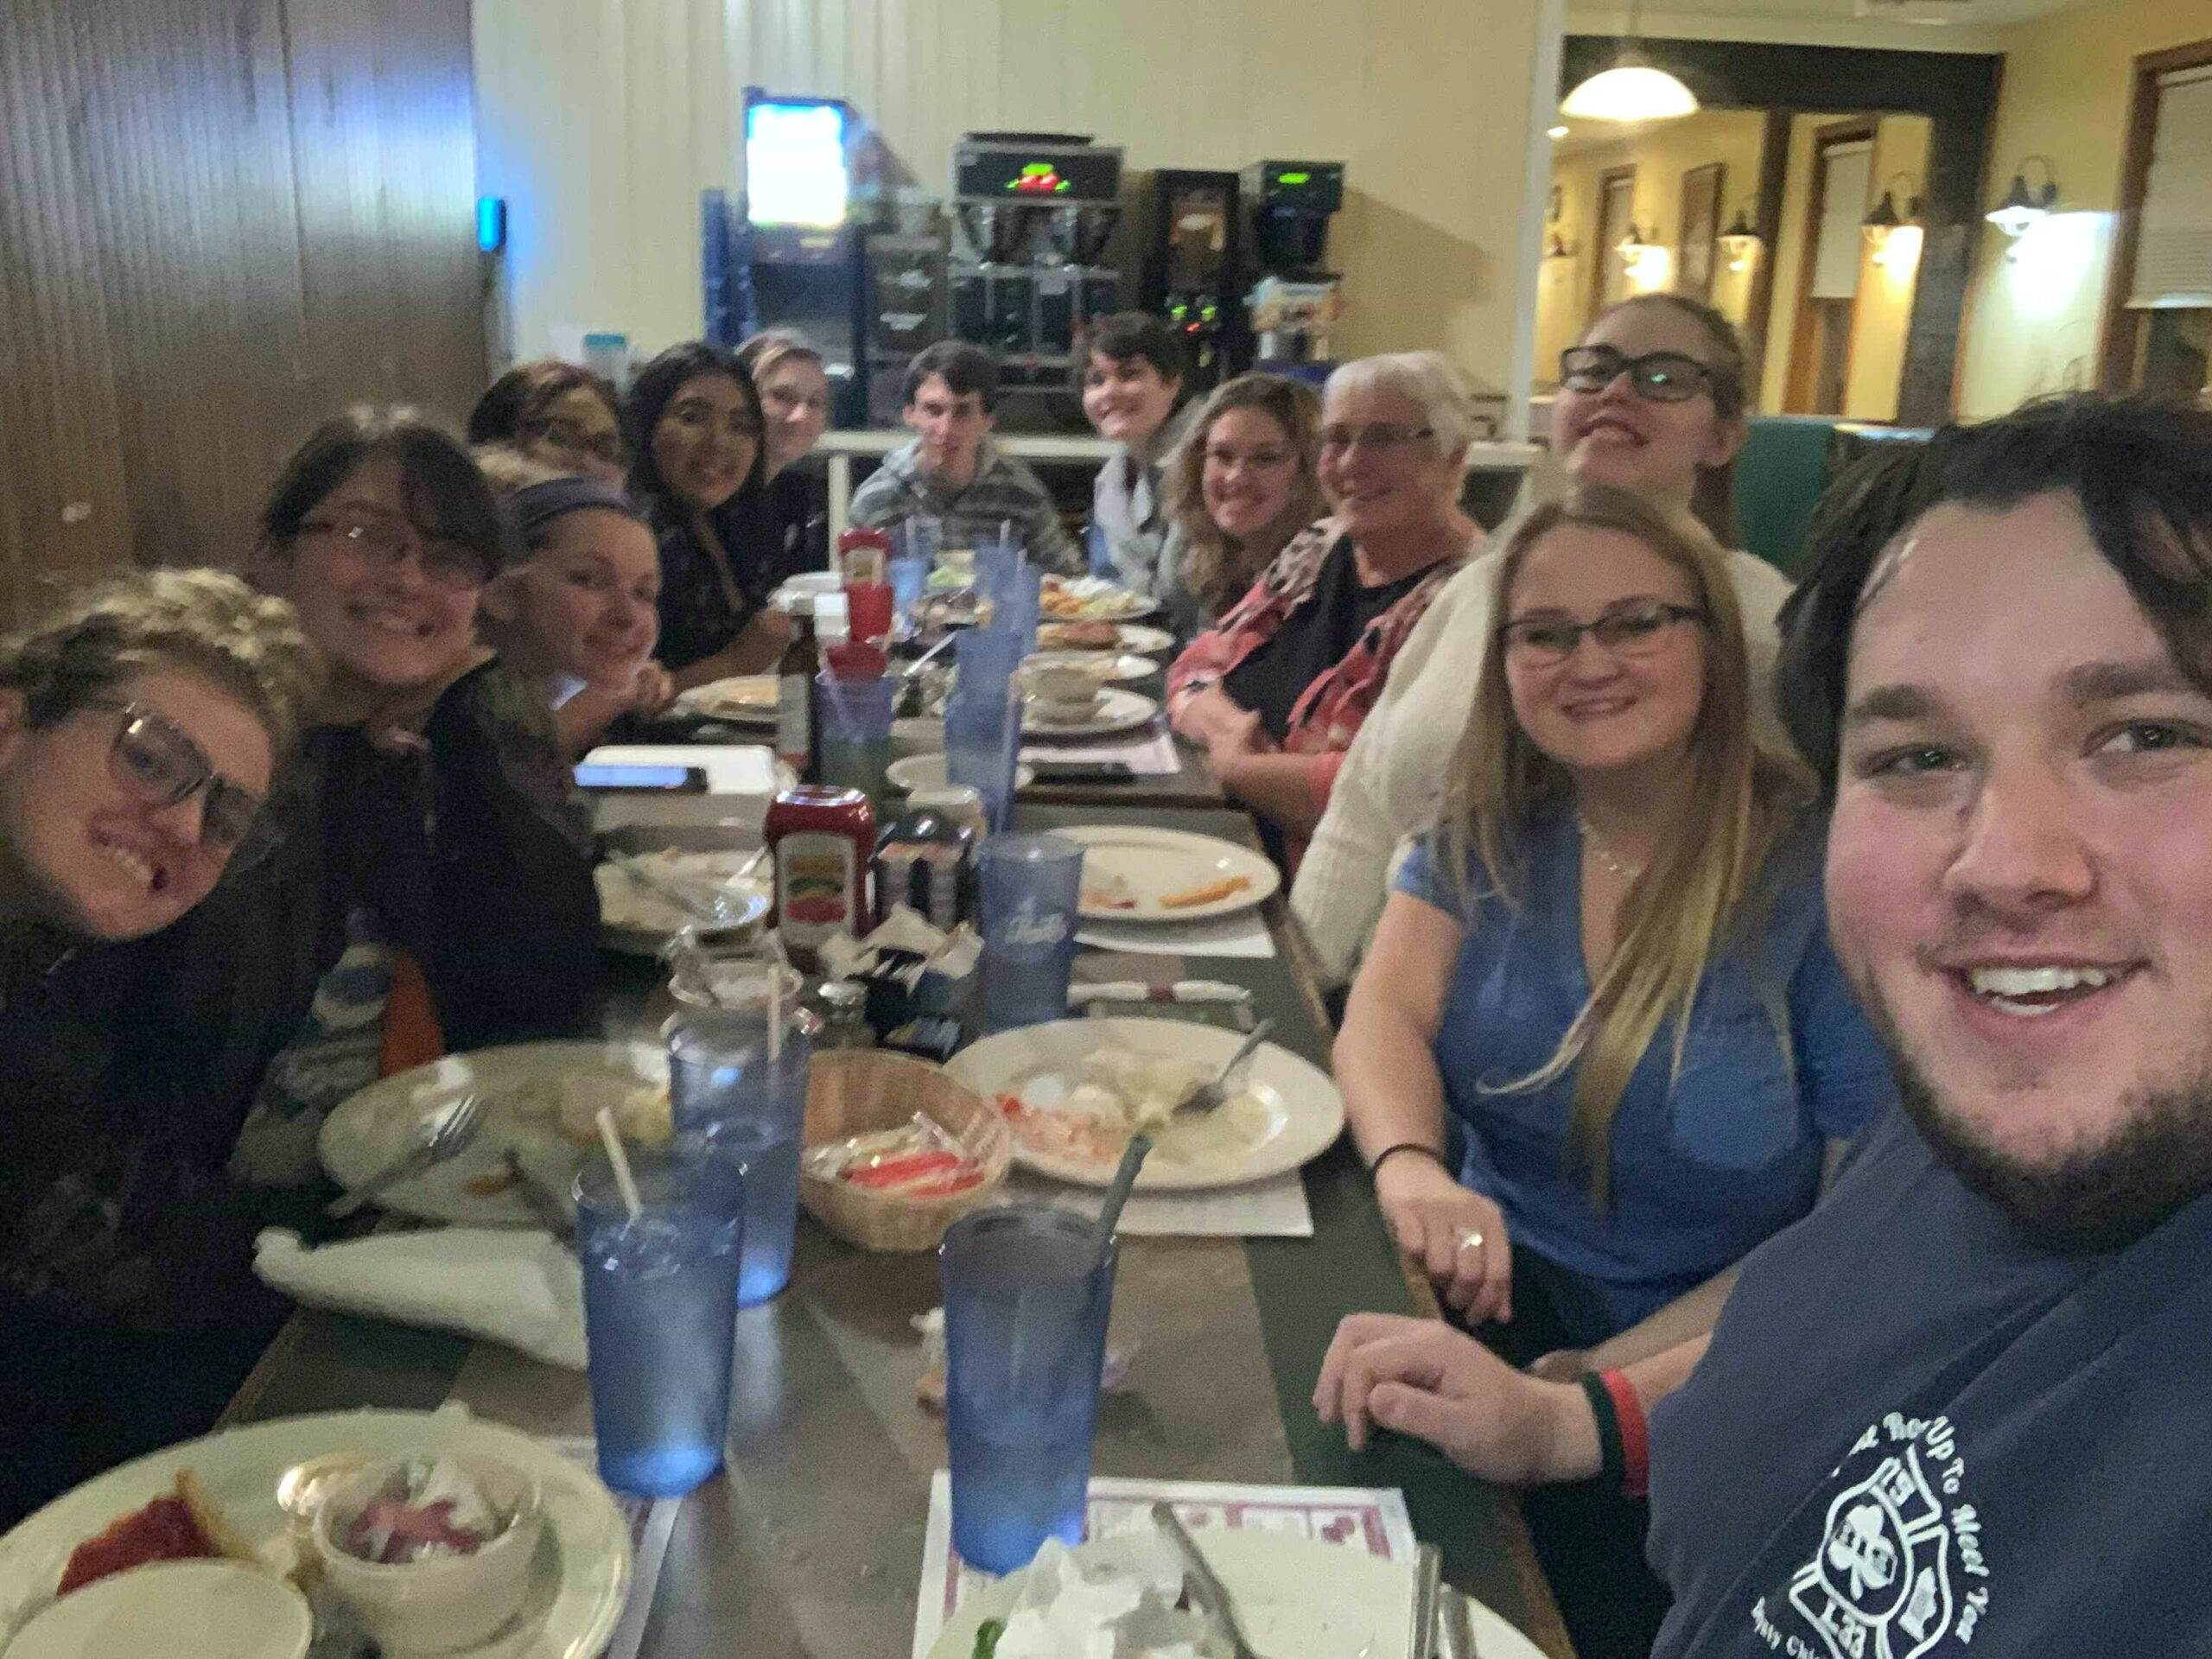 An interpreting major takes a selfie with other ASL majors at a restaurant dinner table